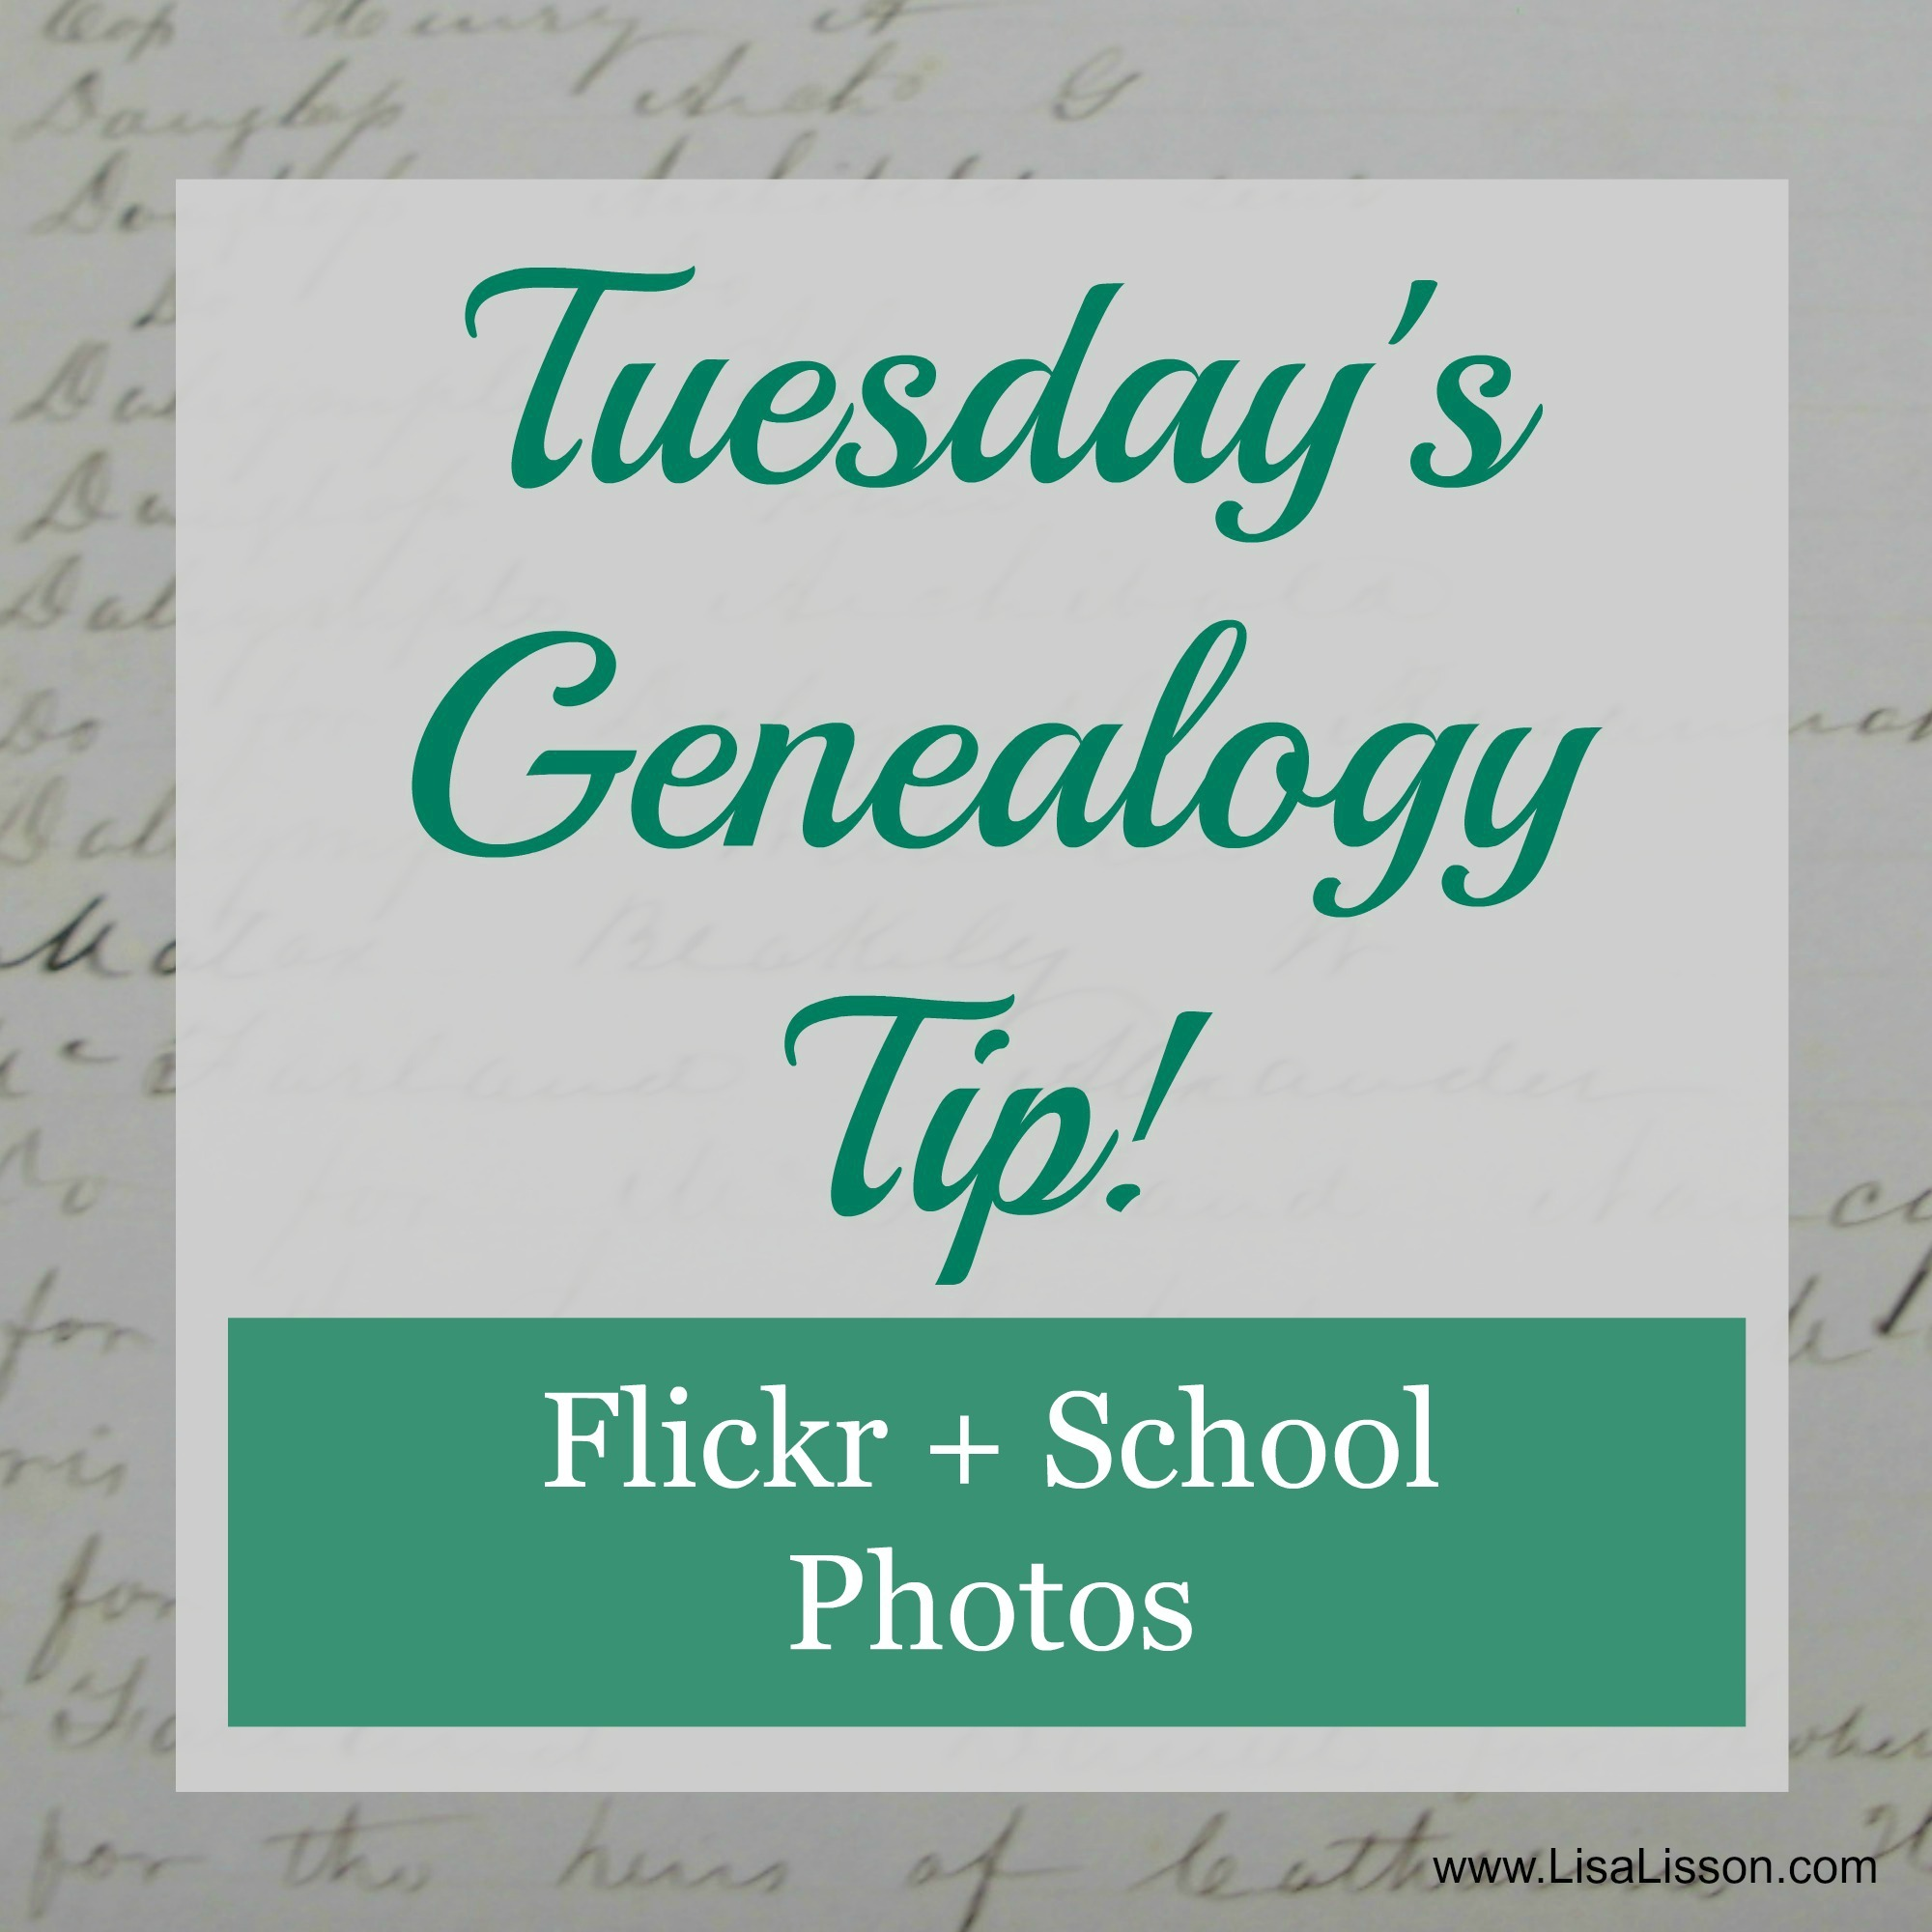 Tuesday's Genealogy Tip – School Photos + Flickr